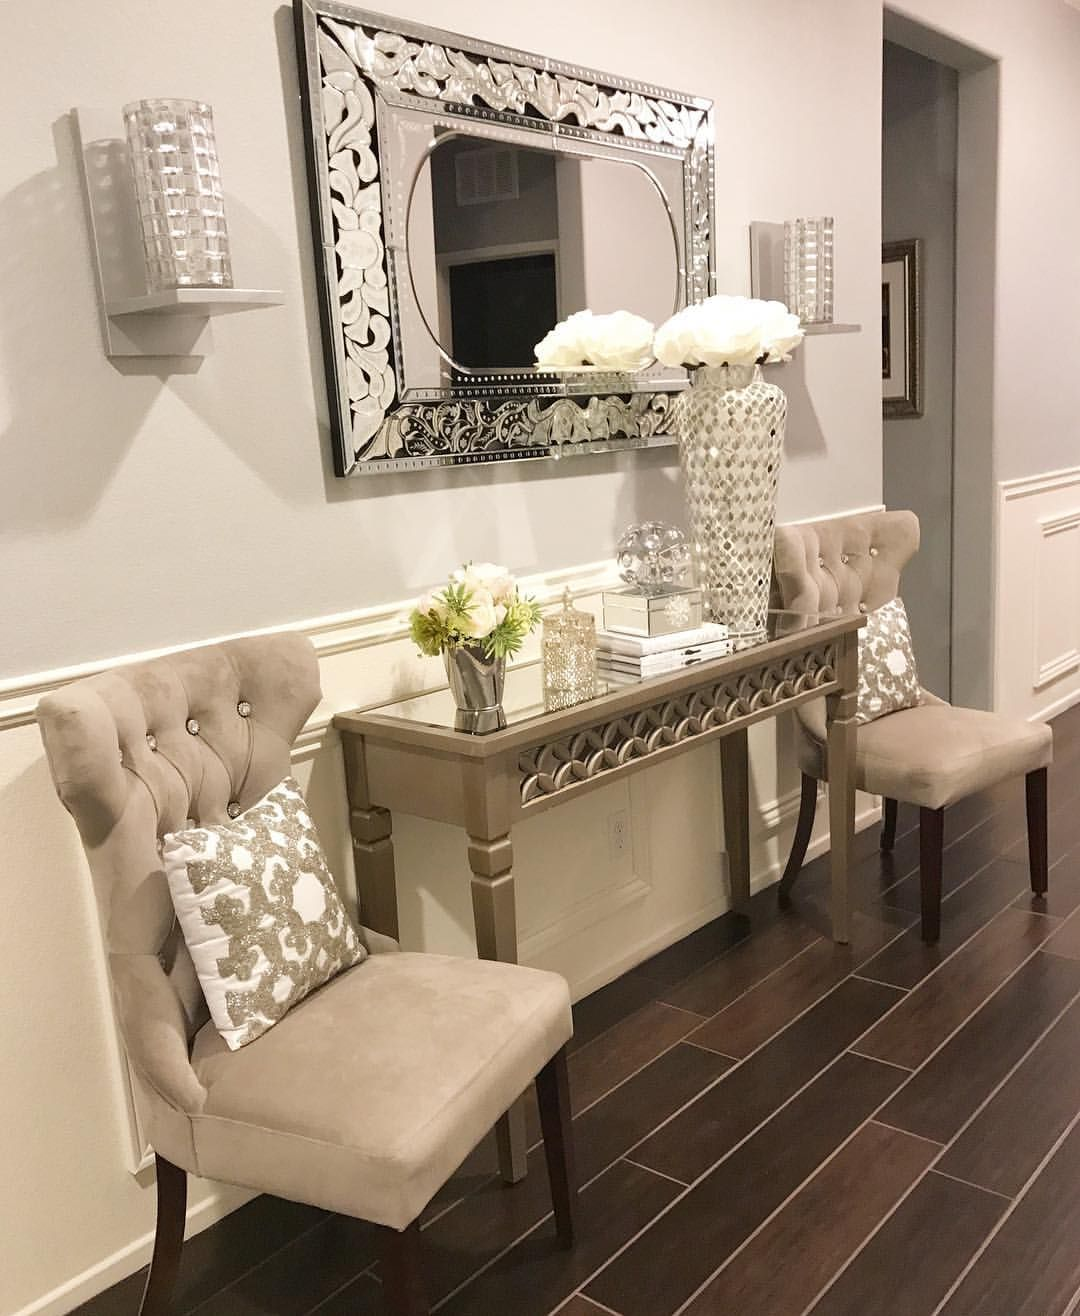 Pin By Shay On Hallway In 2019: Pin By Anna Rosse Esquivel On Hallway Ideas In 2019